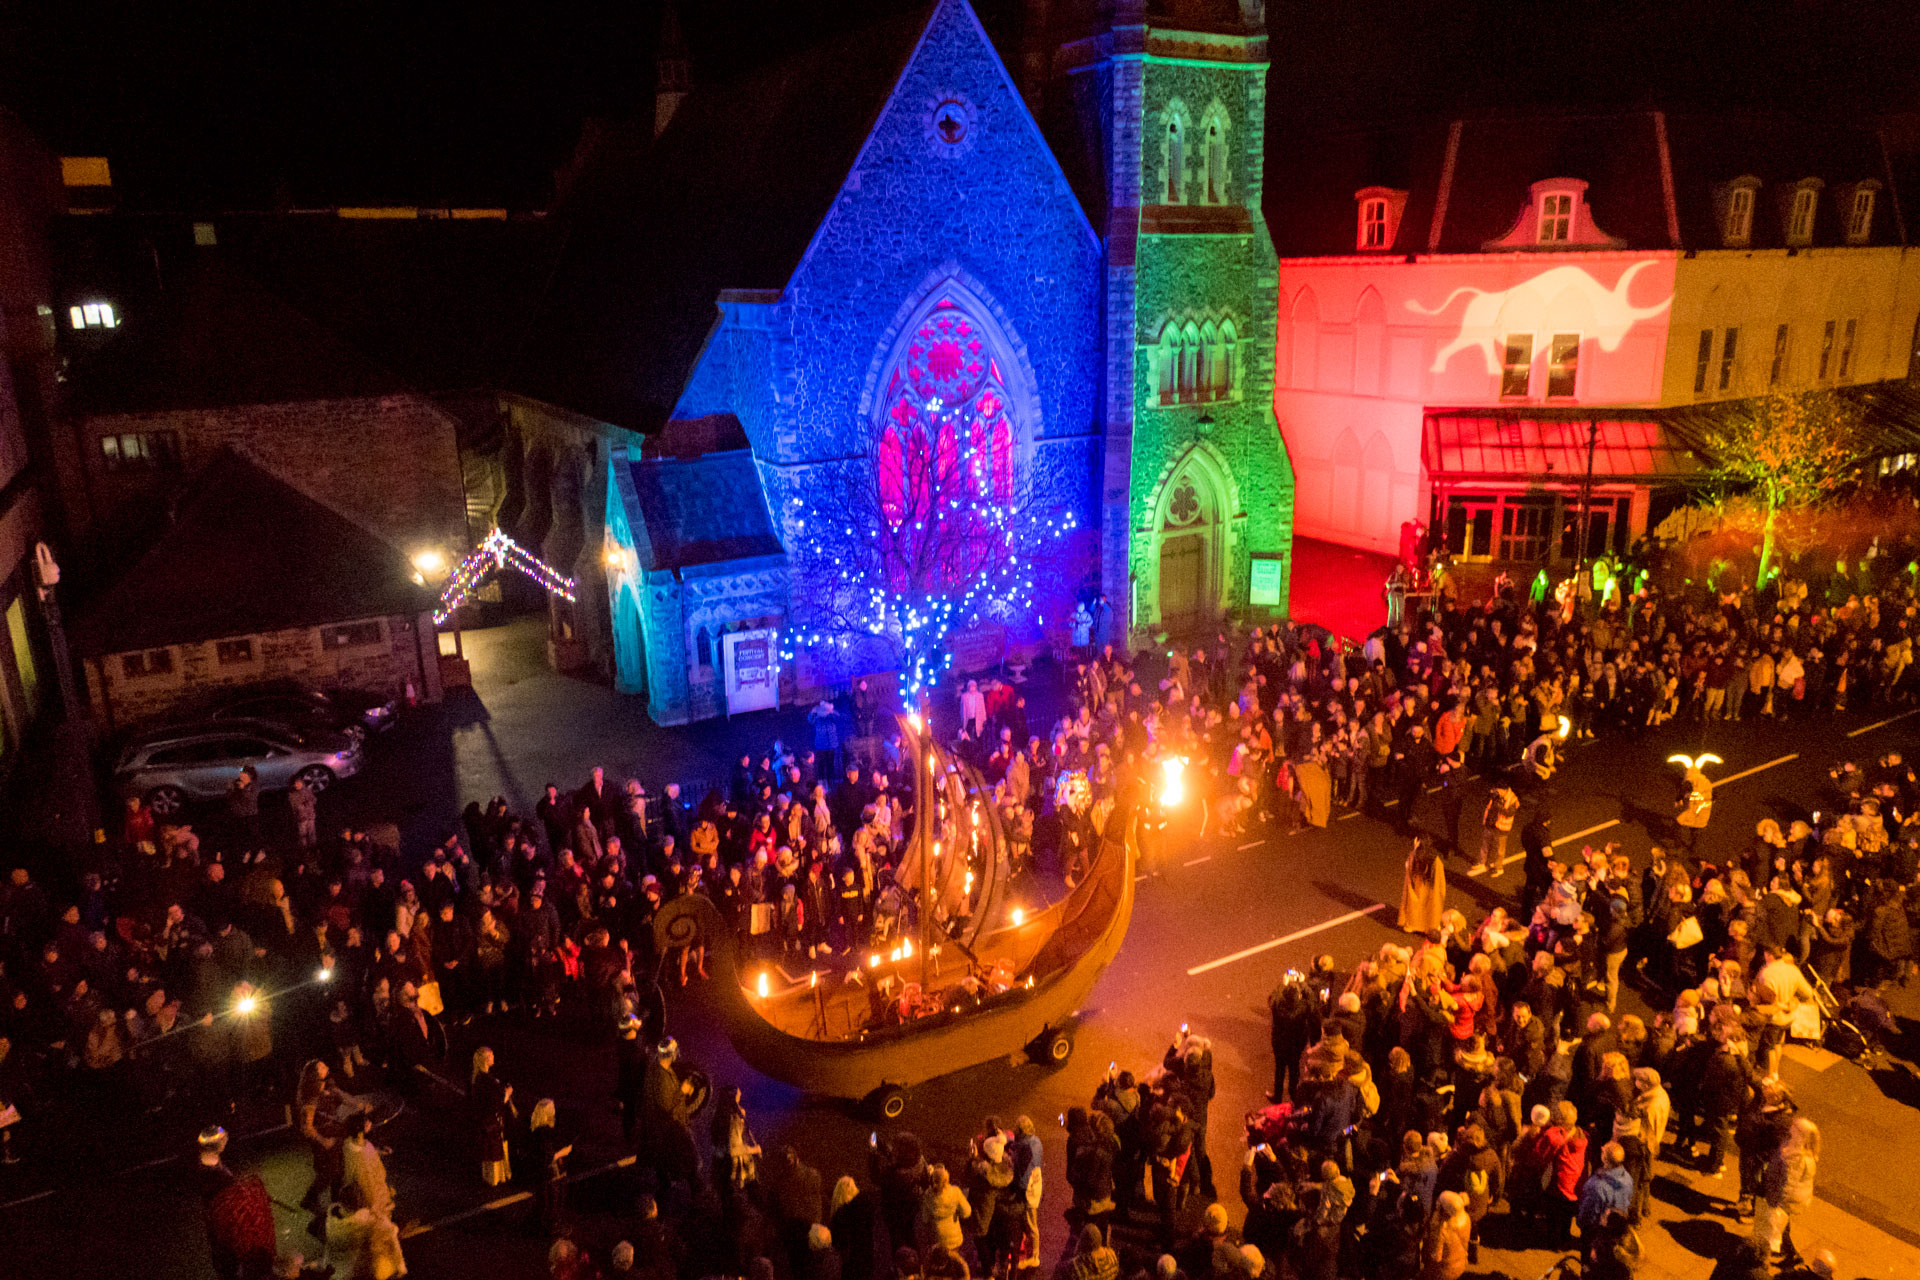 Coloured outdoor lighting at the Llandudno Winter Light / Golau Gaeaf event, in North Wales. To complement the parade, St Johns Church on Mostyn Steet and adjacent buildings were illuminated in blue, green and red with weatherproof LED flood lighting & gobo projections including a giant ox.